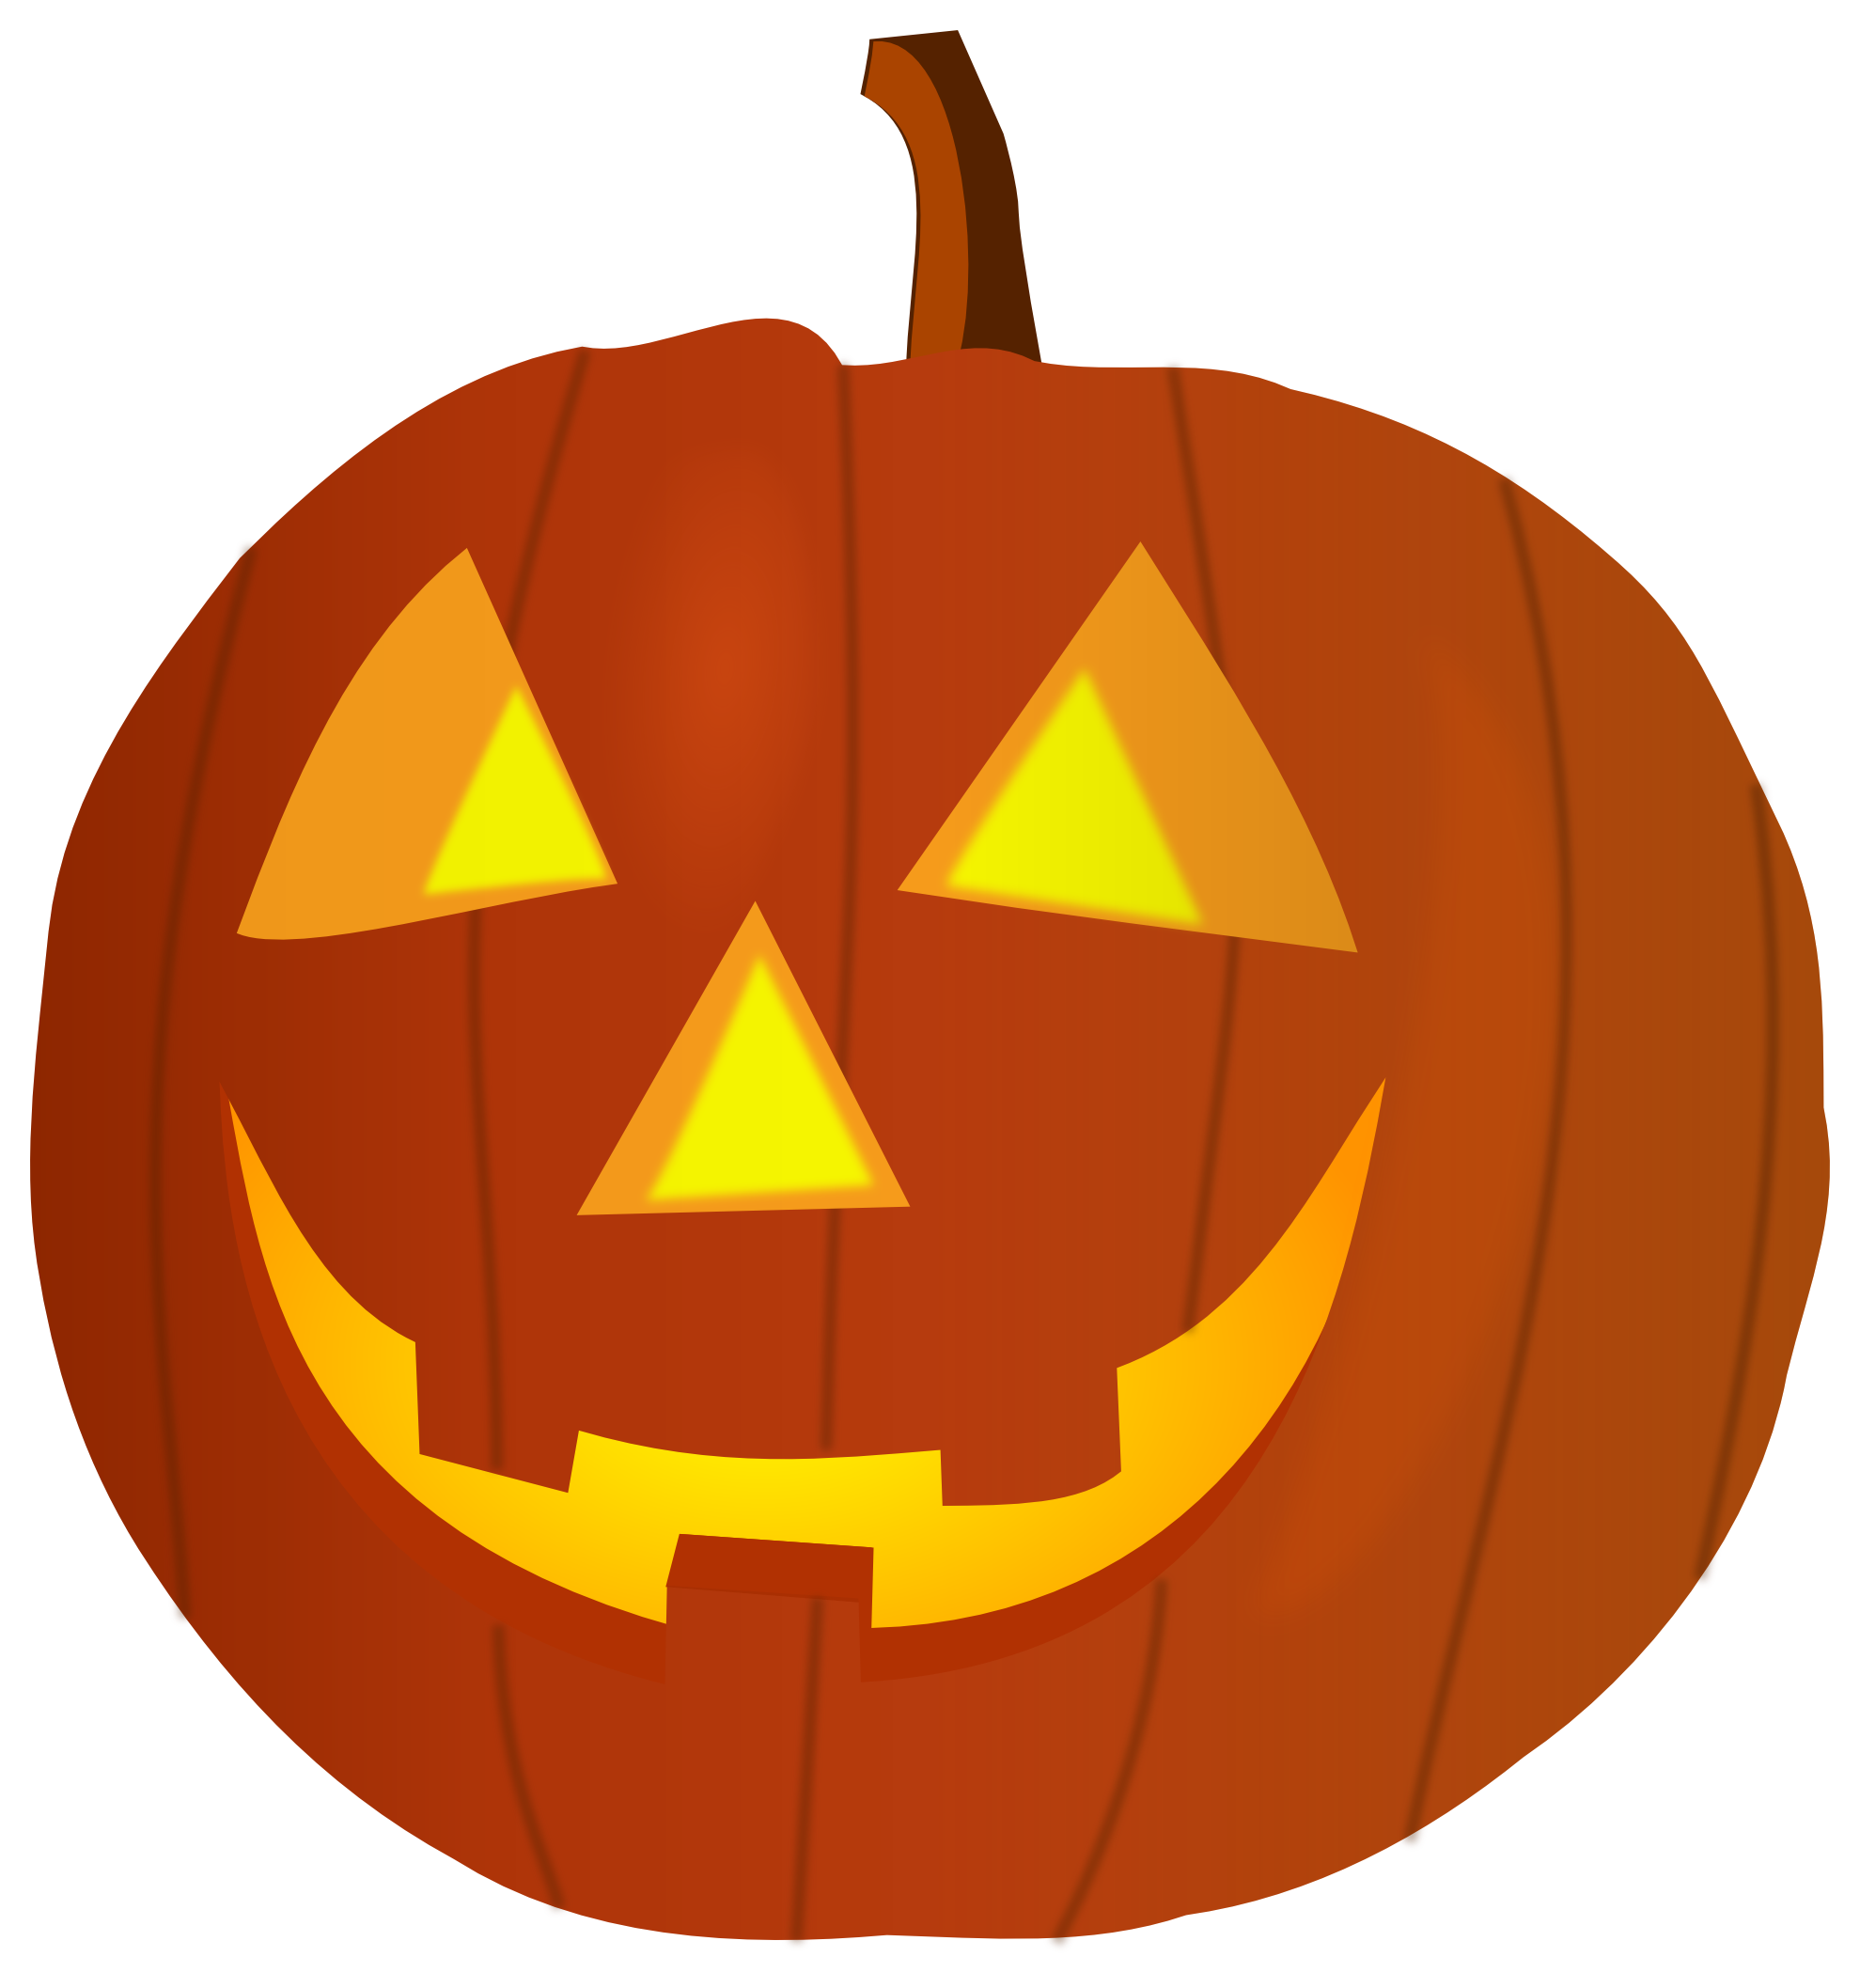 33 pumpkin vector art . Free cliparts that you can download to you ...